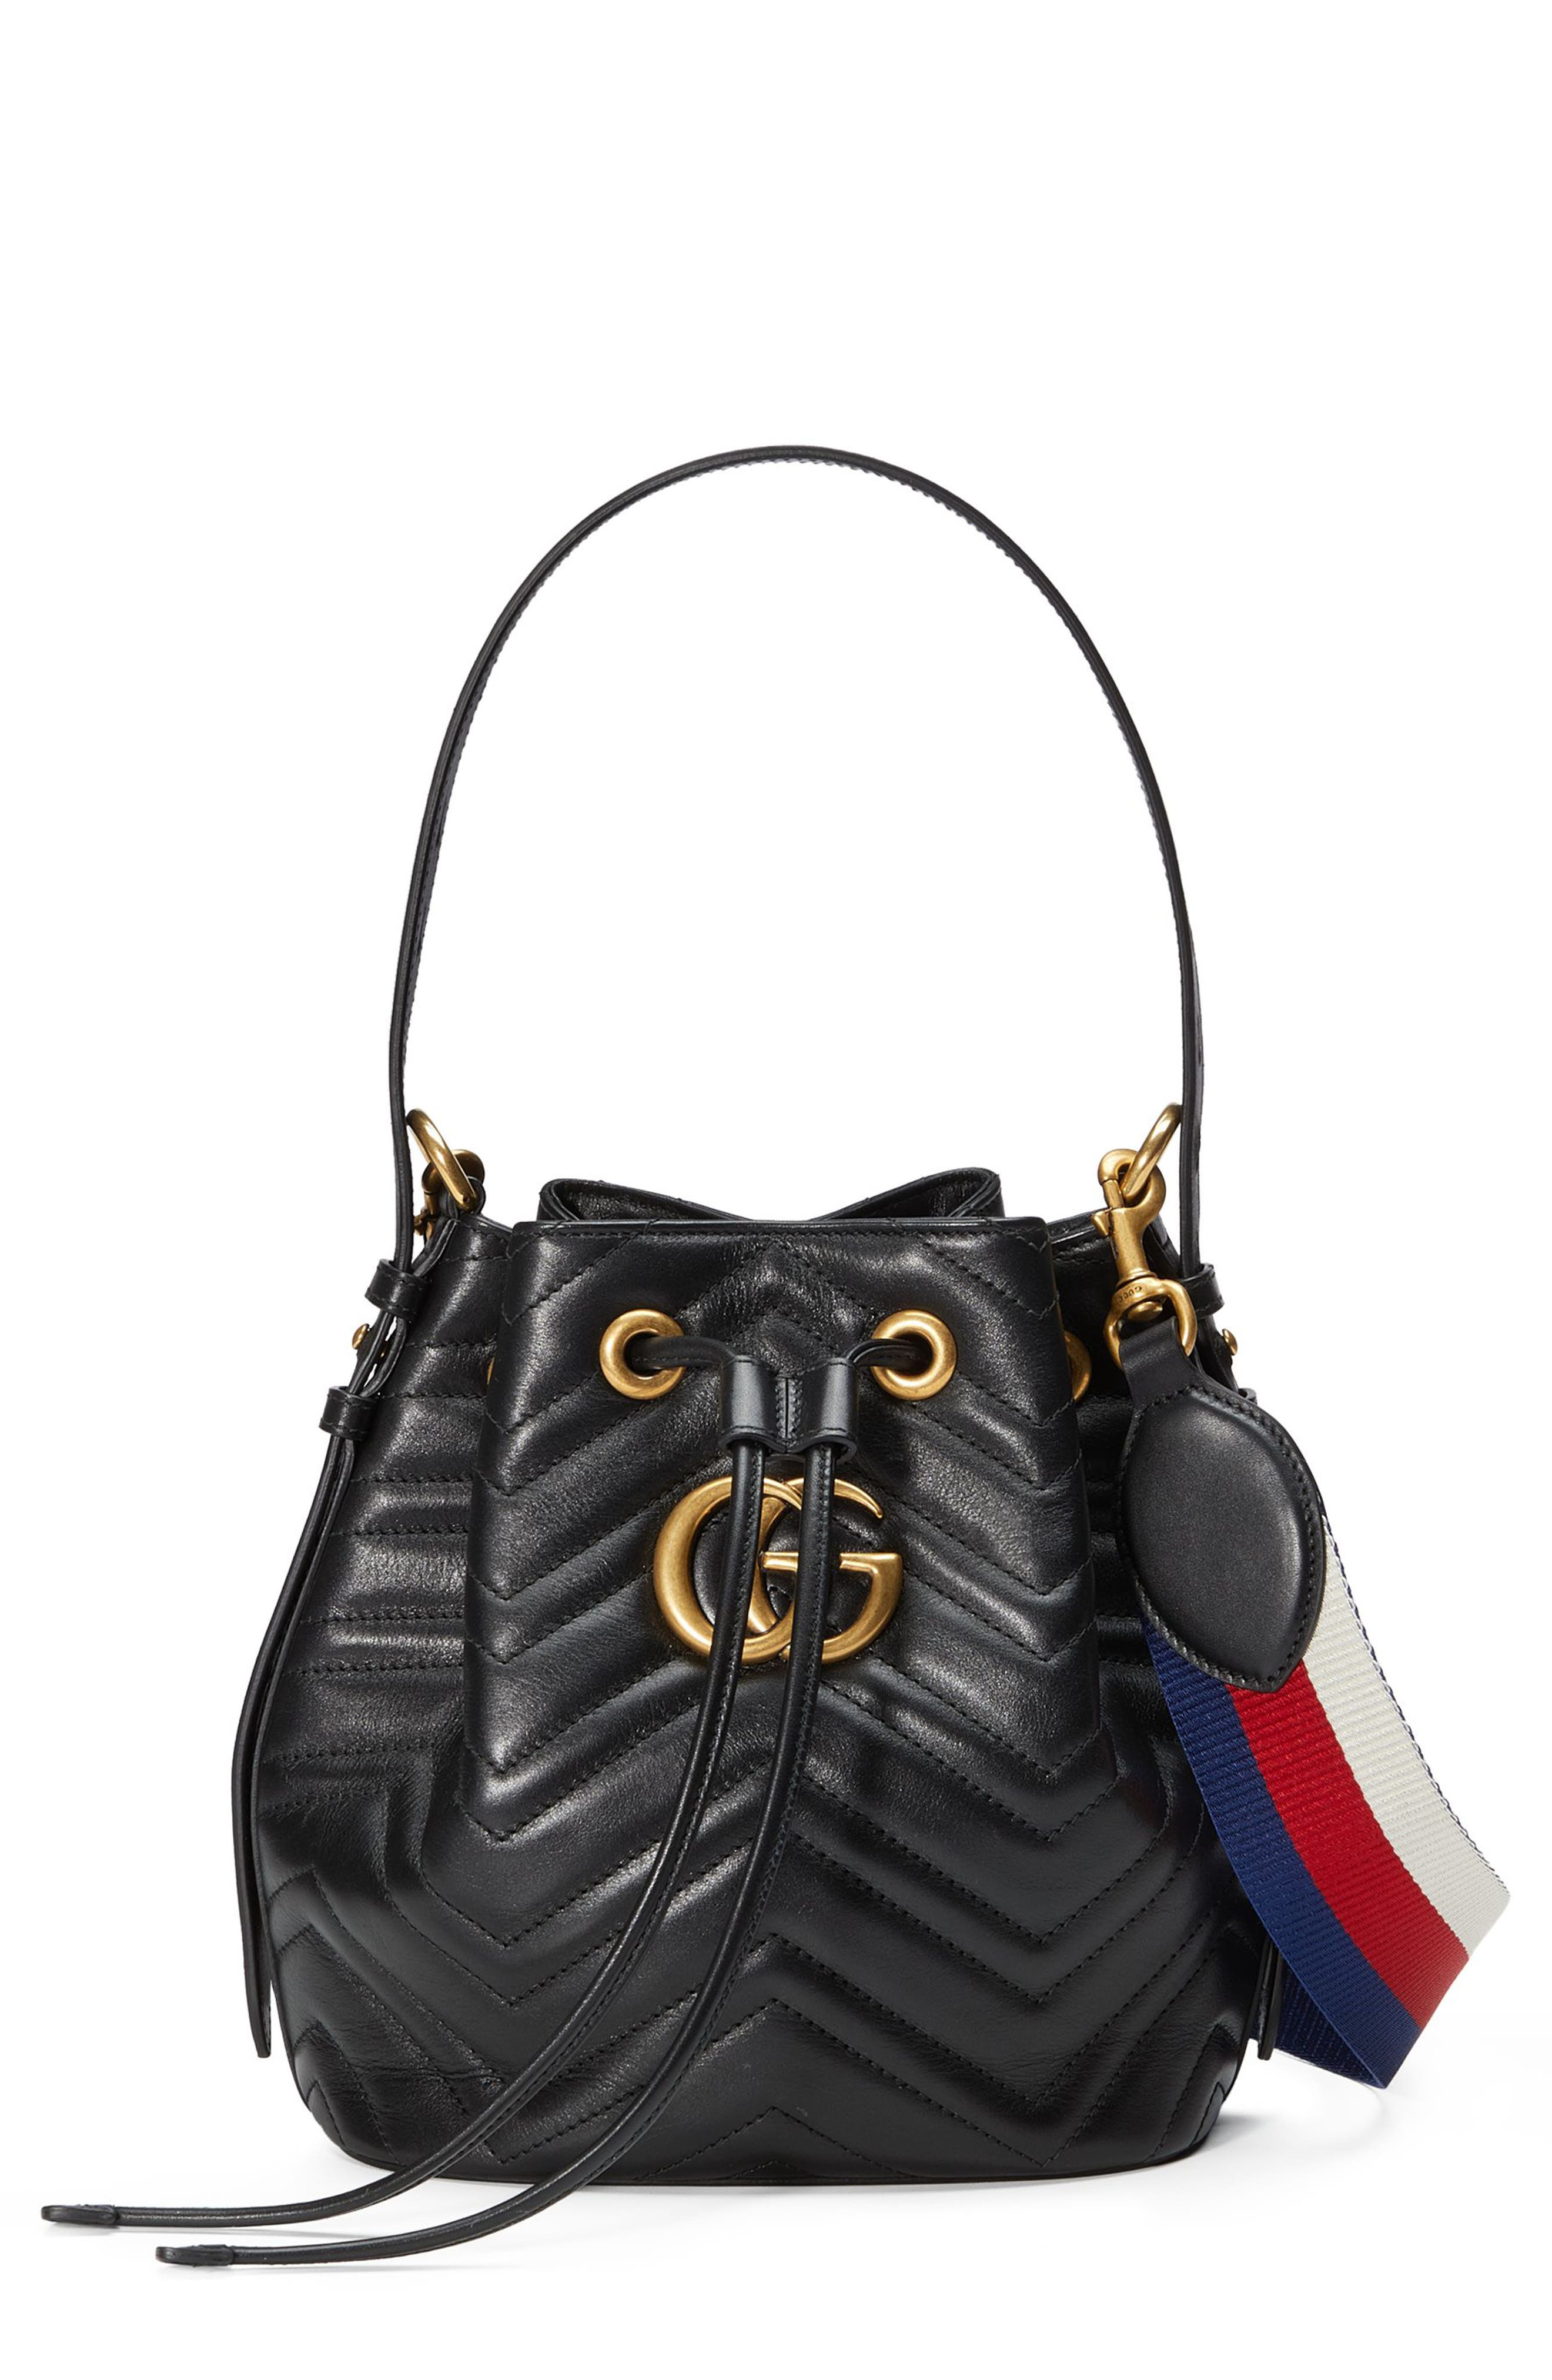 GG Marmont 2.0 Matelassé Leather Bucket Bag,                         Main,                         color, 977